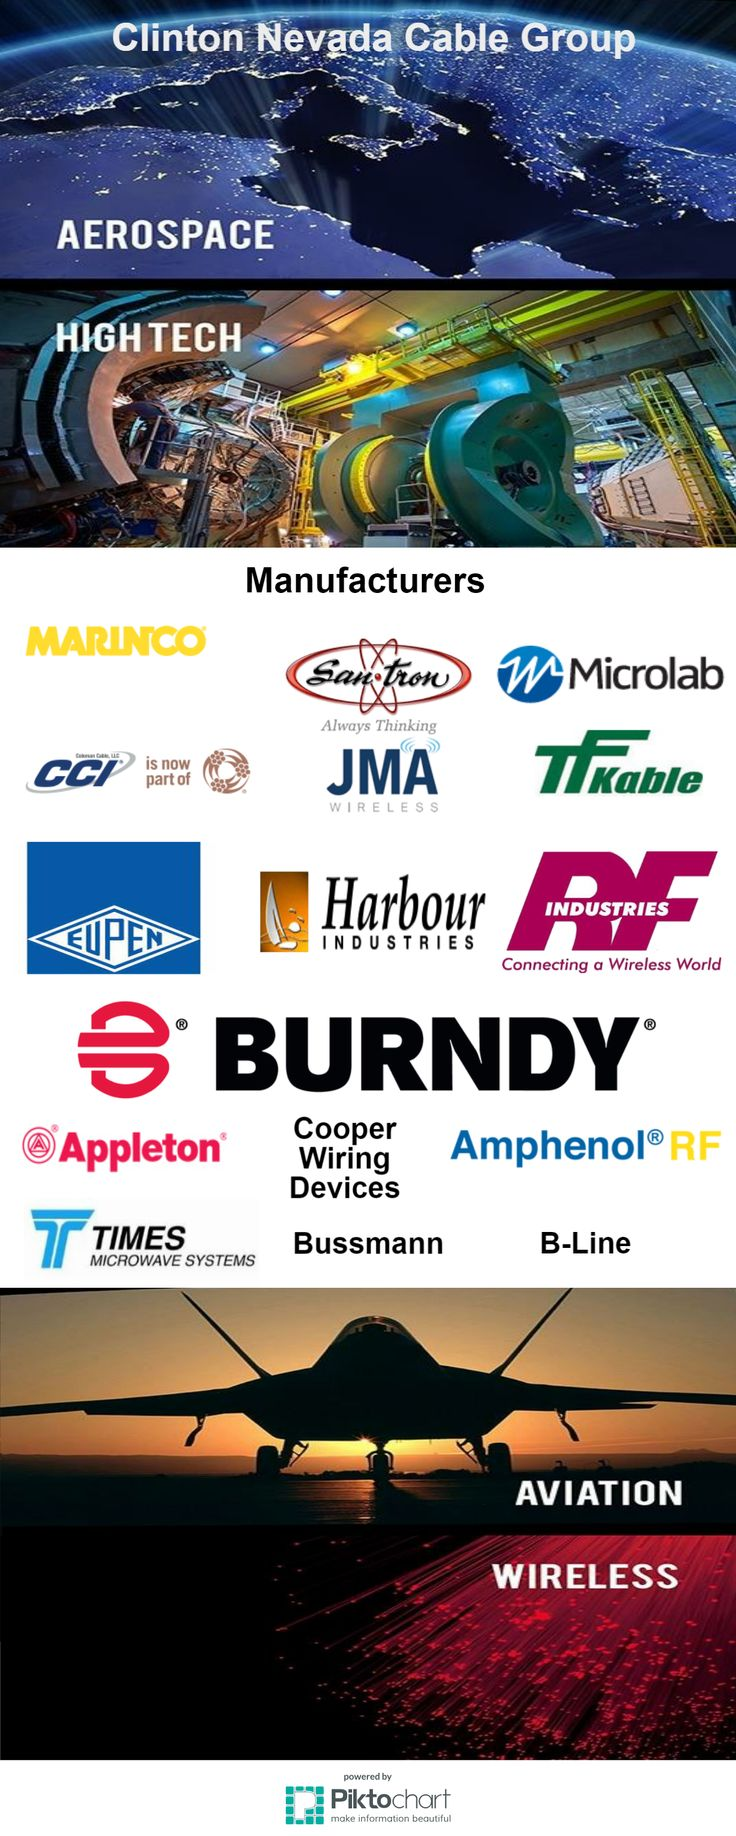 Clinton Nevada Cable Group proudly offers components and products from Times Microwave Systems. For details about our selection of Times Microwave products, please contact us at info@clintonnevada.com.